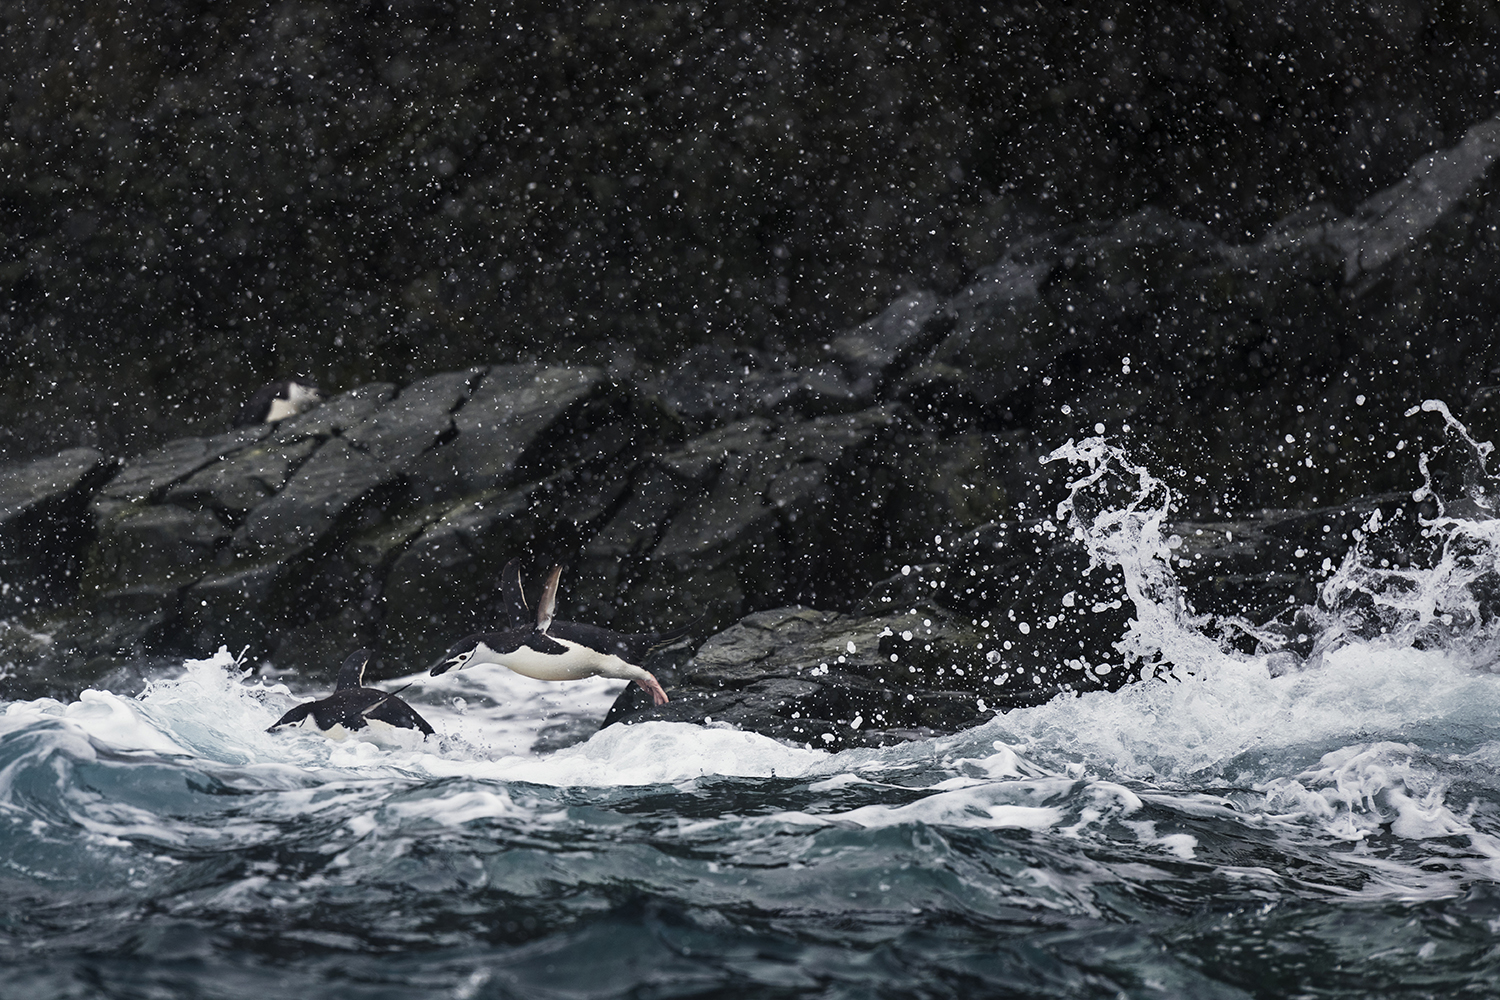 Chinstrap penguins diving into the ocean at Brabant Island in Antarctica.